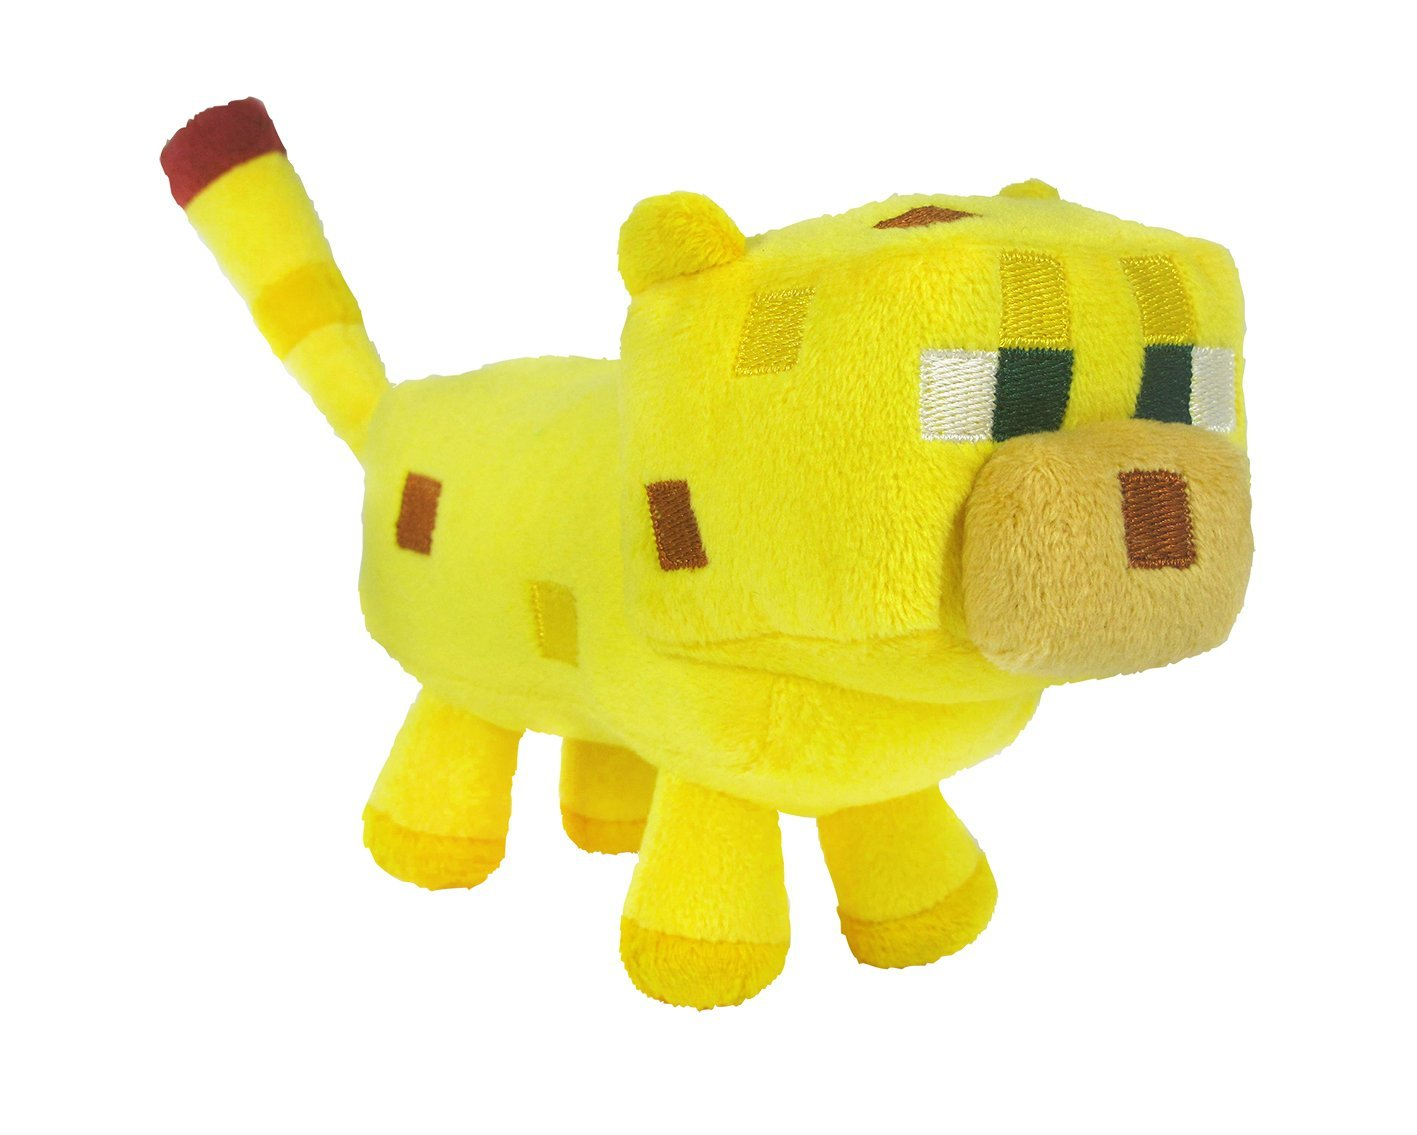 Minecraft Plush Toys – Stuffed animals and Plushies for kids